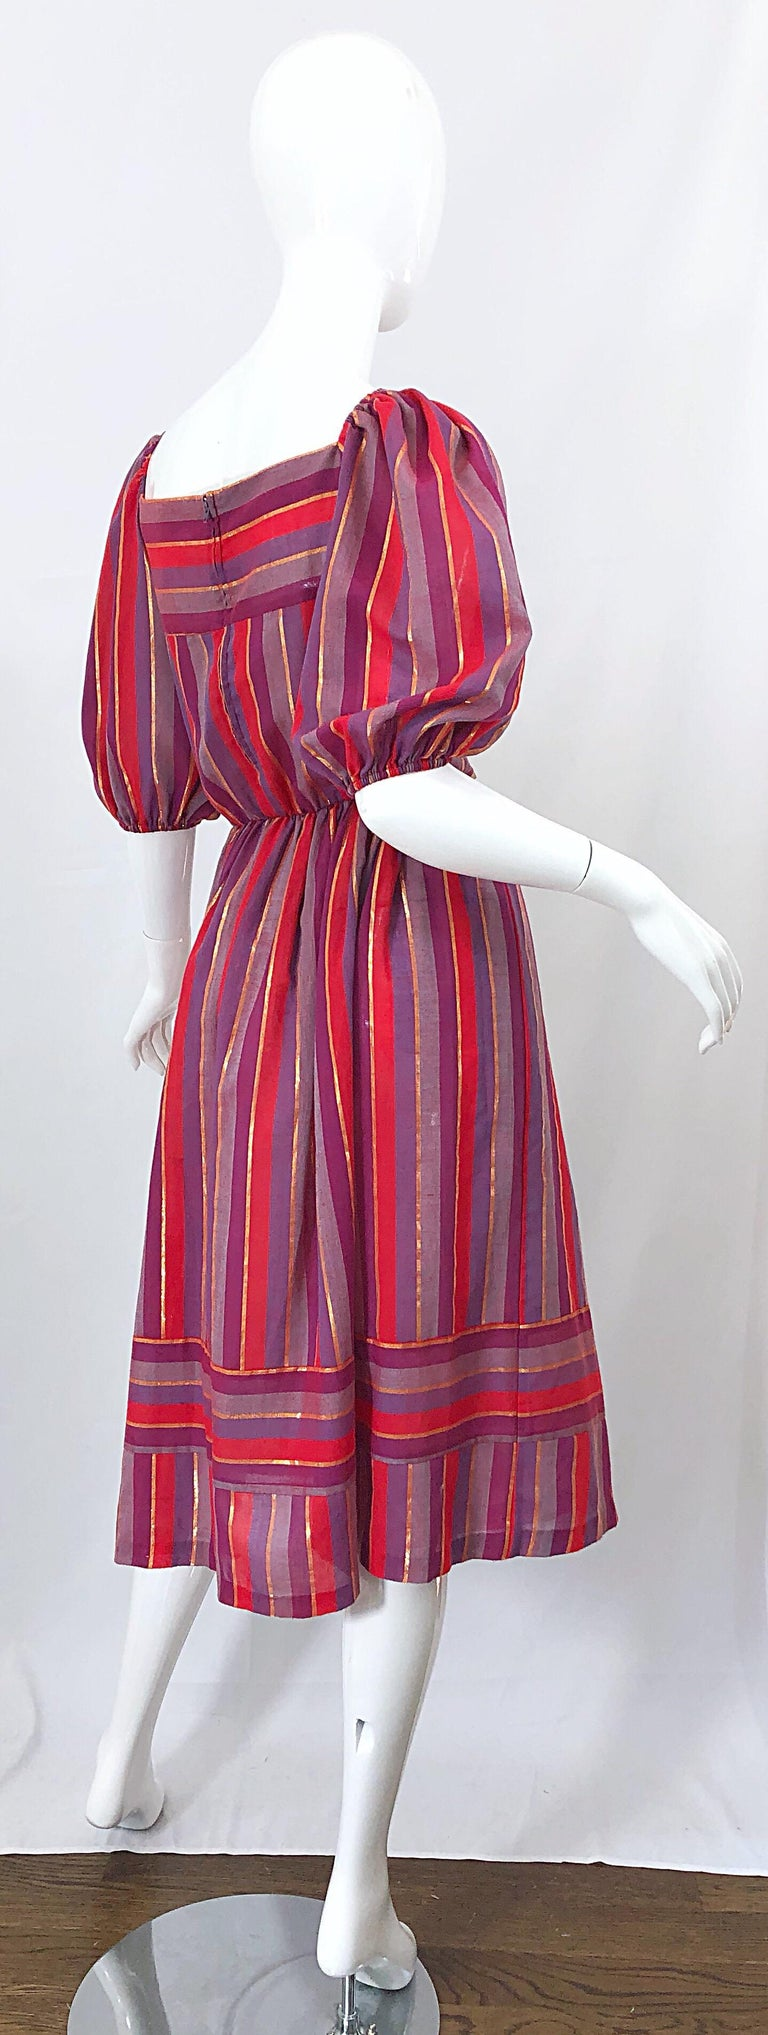 1970s Boho Chic Red + Purple + Gold Striped Cotton Voile 70s Vintage Dress For Sale 5